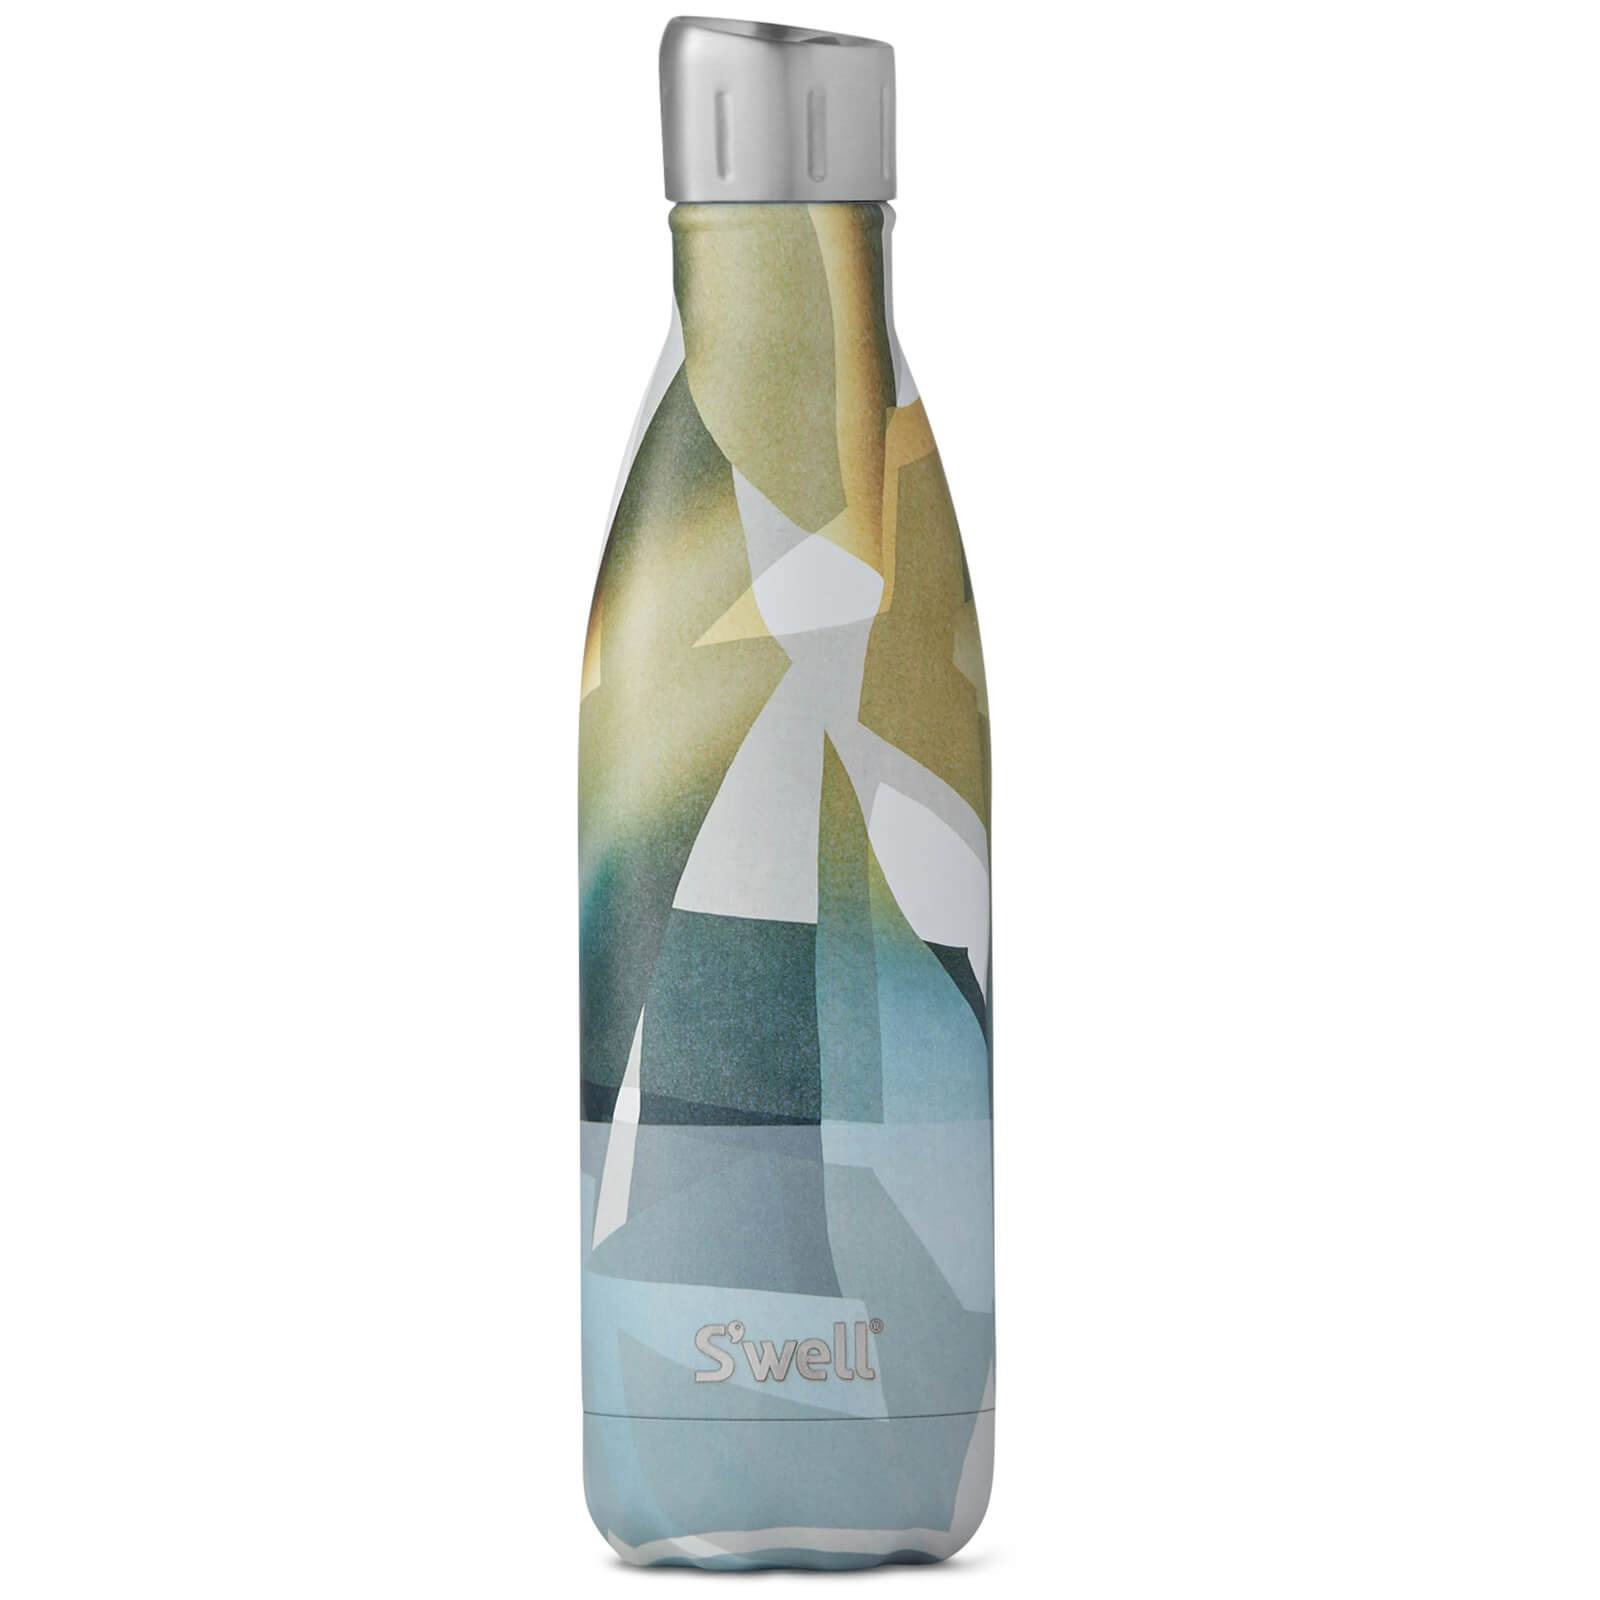 S'well Elan Water Bottle 500ml